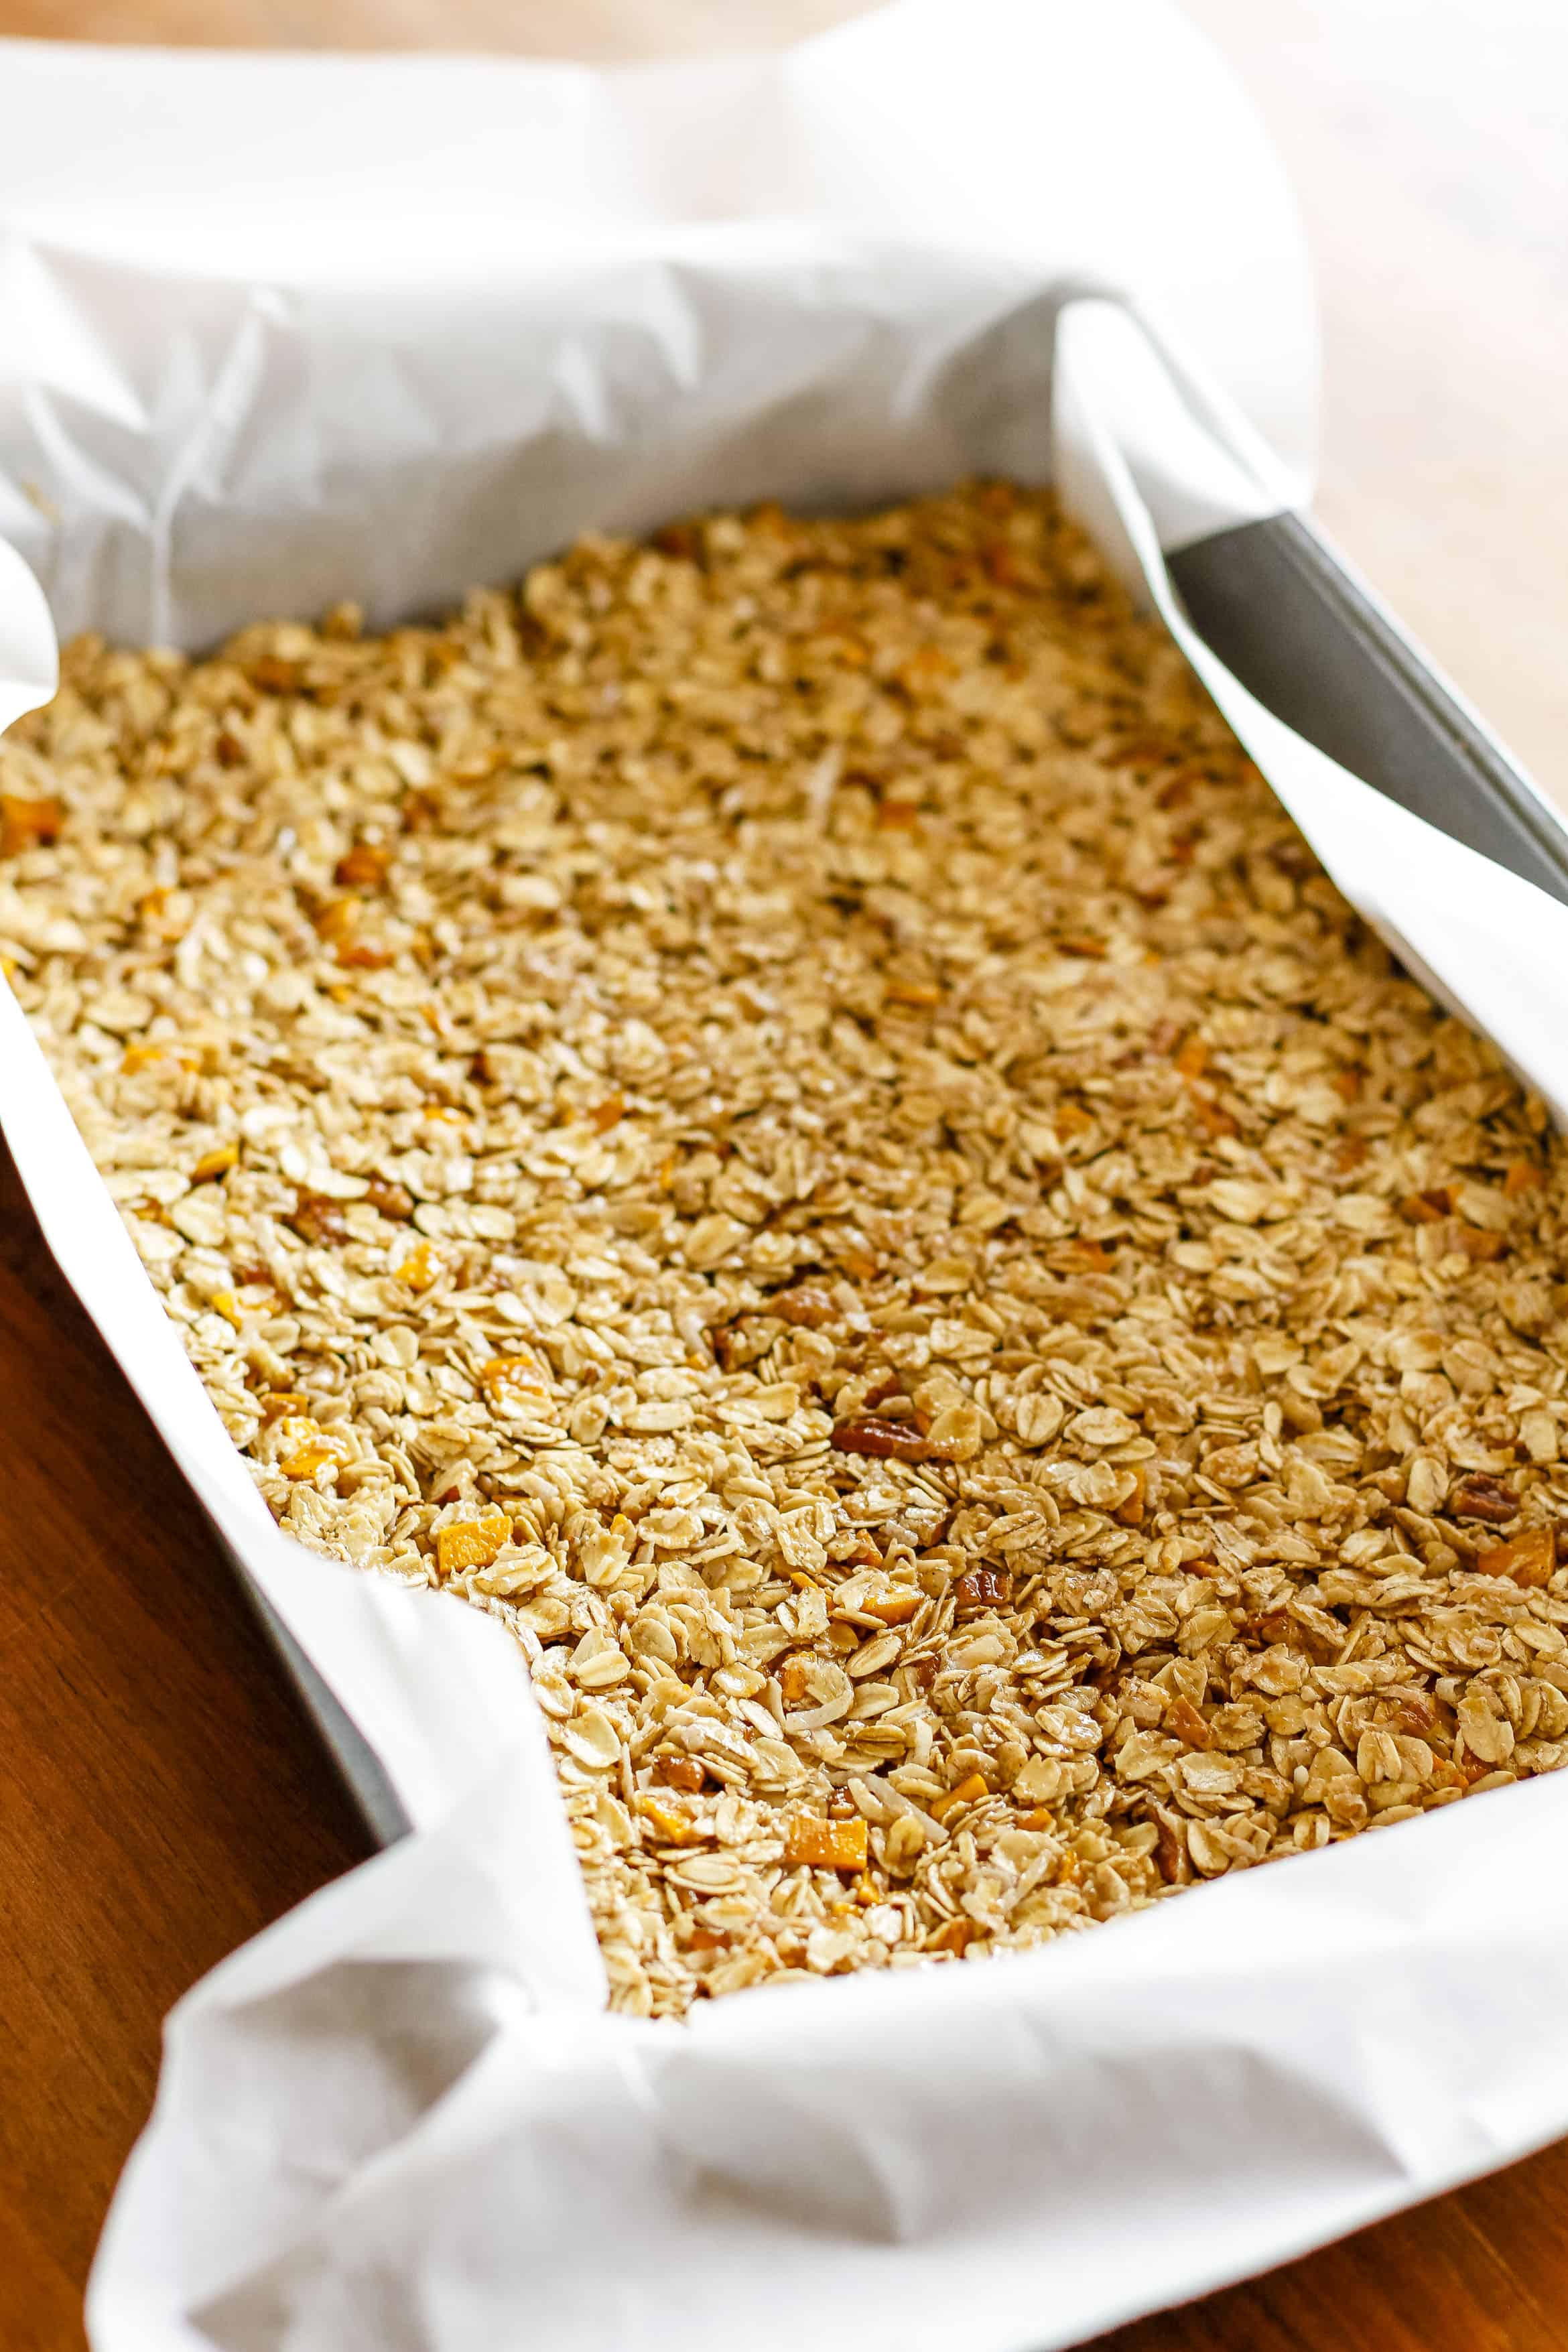 Homemade Granola Bars -- these crunchy homemade granola bars are a tasty and healthy snack... Customize the dried fruits and nuts to make them your own! Plus 4 more fab after school healthy snacks... | unsophisticook.com